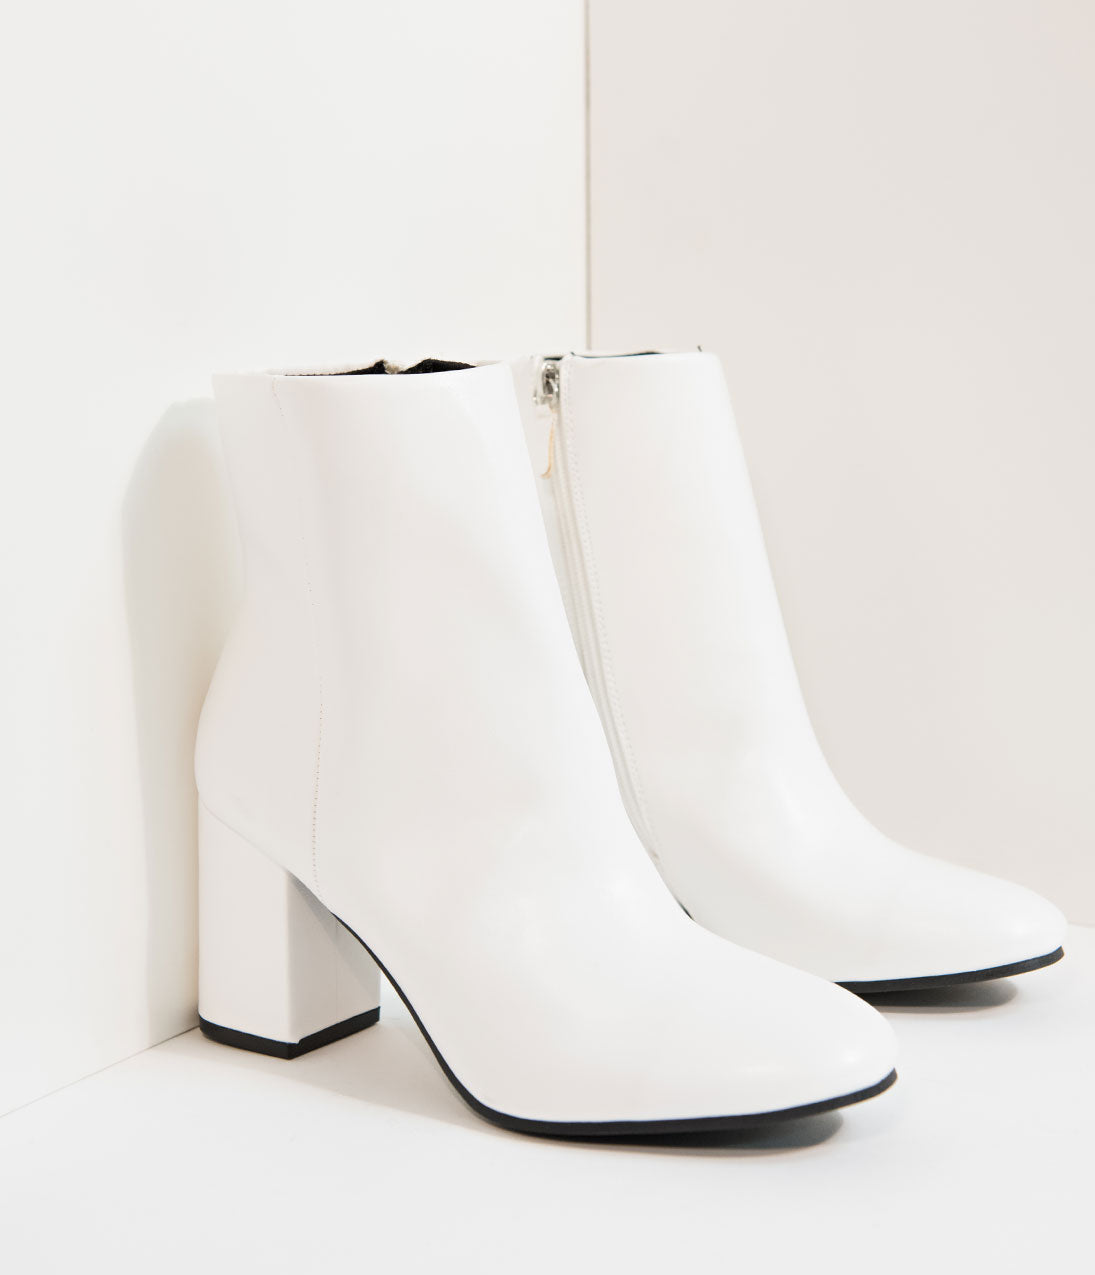 Vintage Boots- Buy Winter Retro Boots Retro Style White Leatherette Mod Ankle Boots $56.00 AT vintagedancer.com